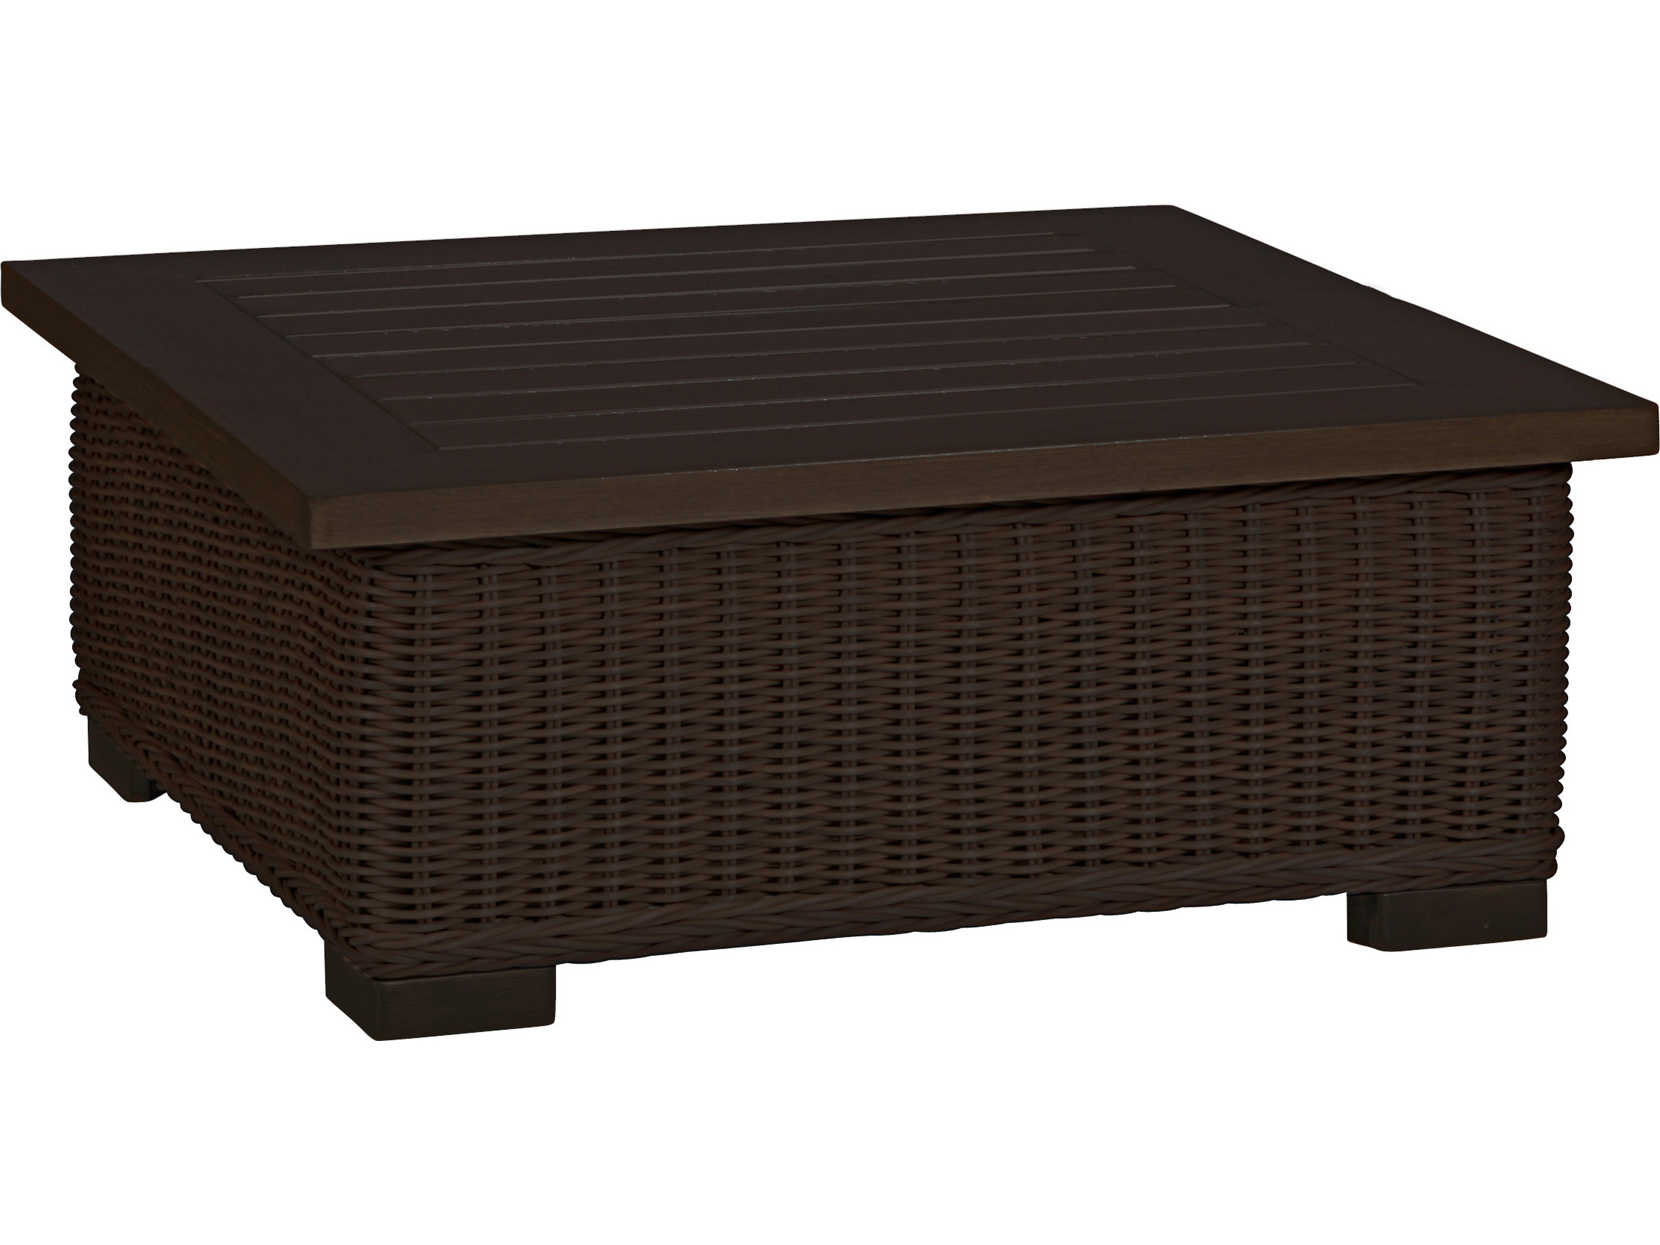 Summer Classics Rustic Wicker Black Walnut 43'' Wide